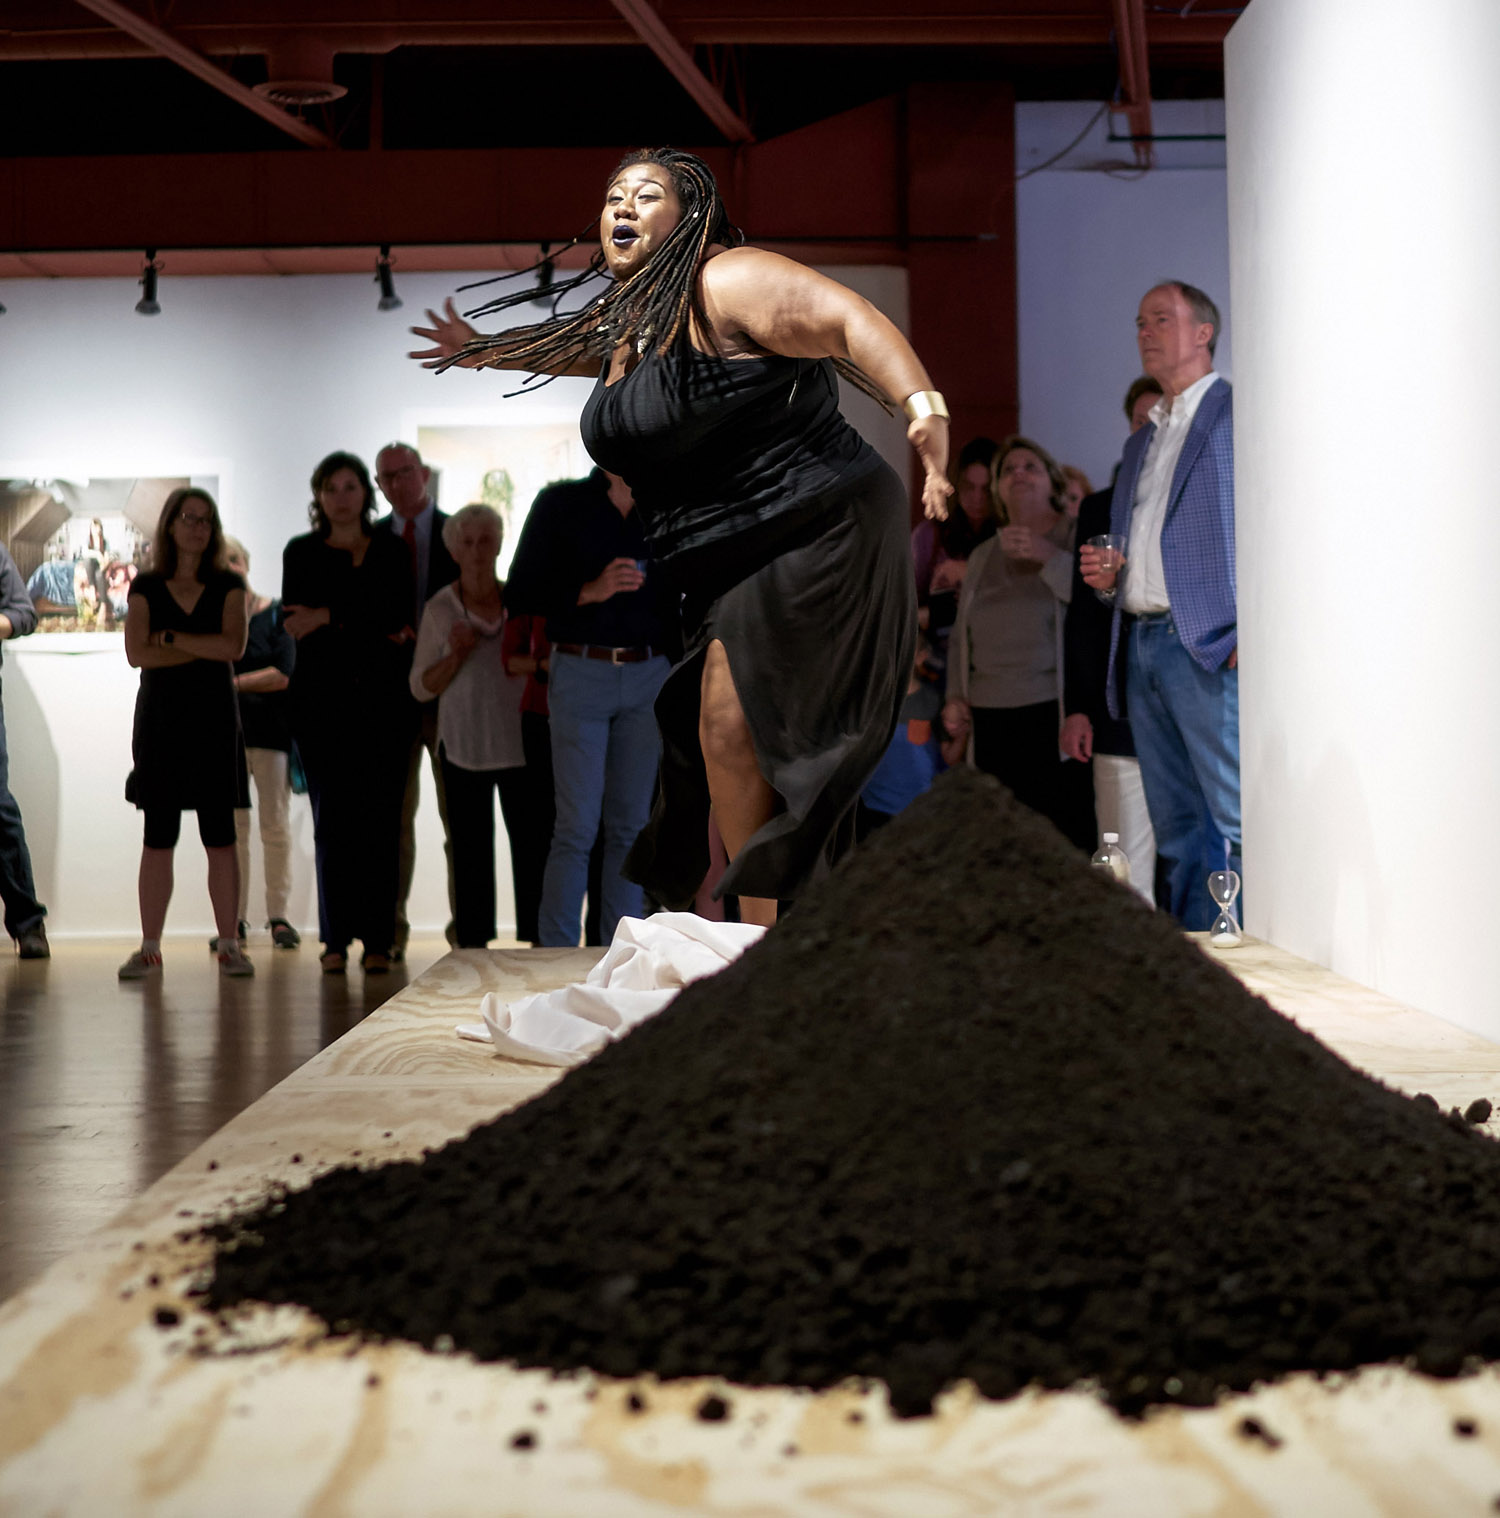 """Be"" performance by Tempestt Farr, choreographed by Heidi Bartlett for the UpSpeak show at Moberg Gallery"